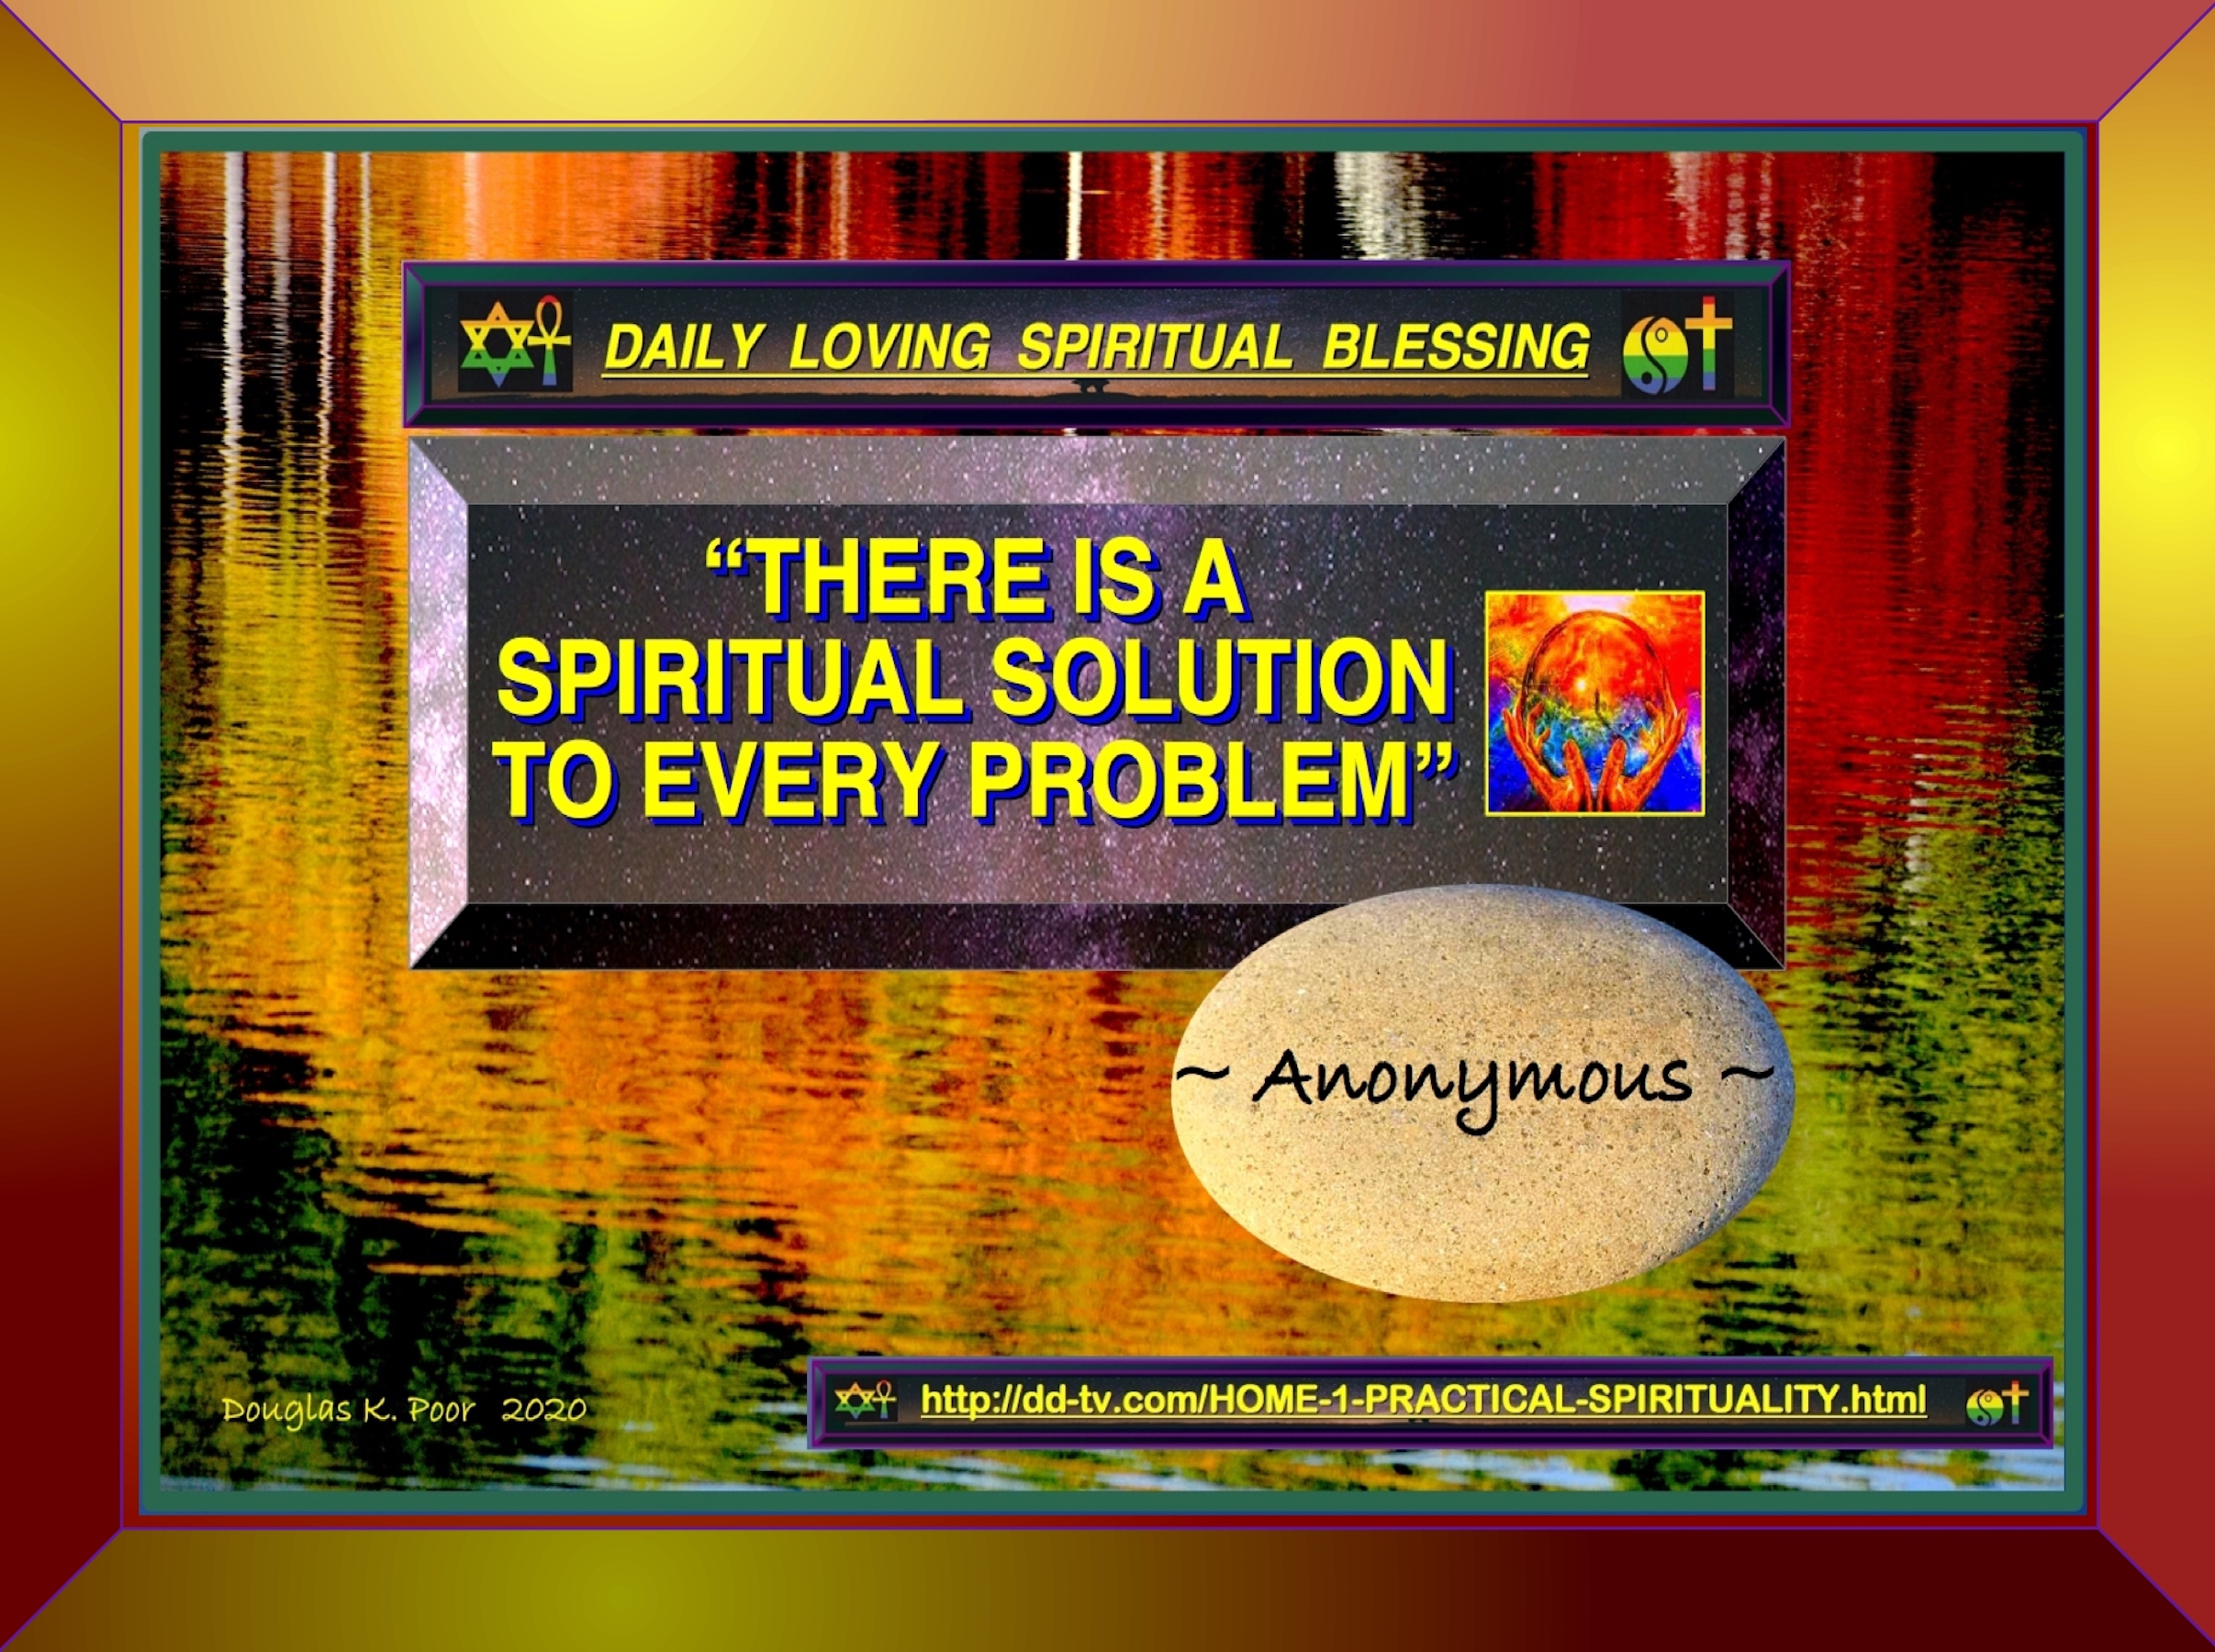 ====================PANEL BLESS THERE IS A SPIRITUAL SOLUTION TO EVERY PROBLEM===============================================================================================PANEL BLESS THERE IS A SPIRITUAL SOLUTION TO EVERY PROBLEM